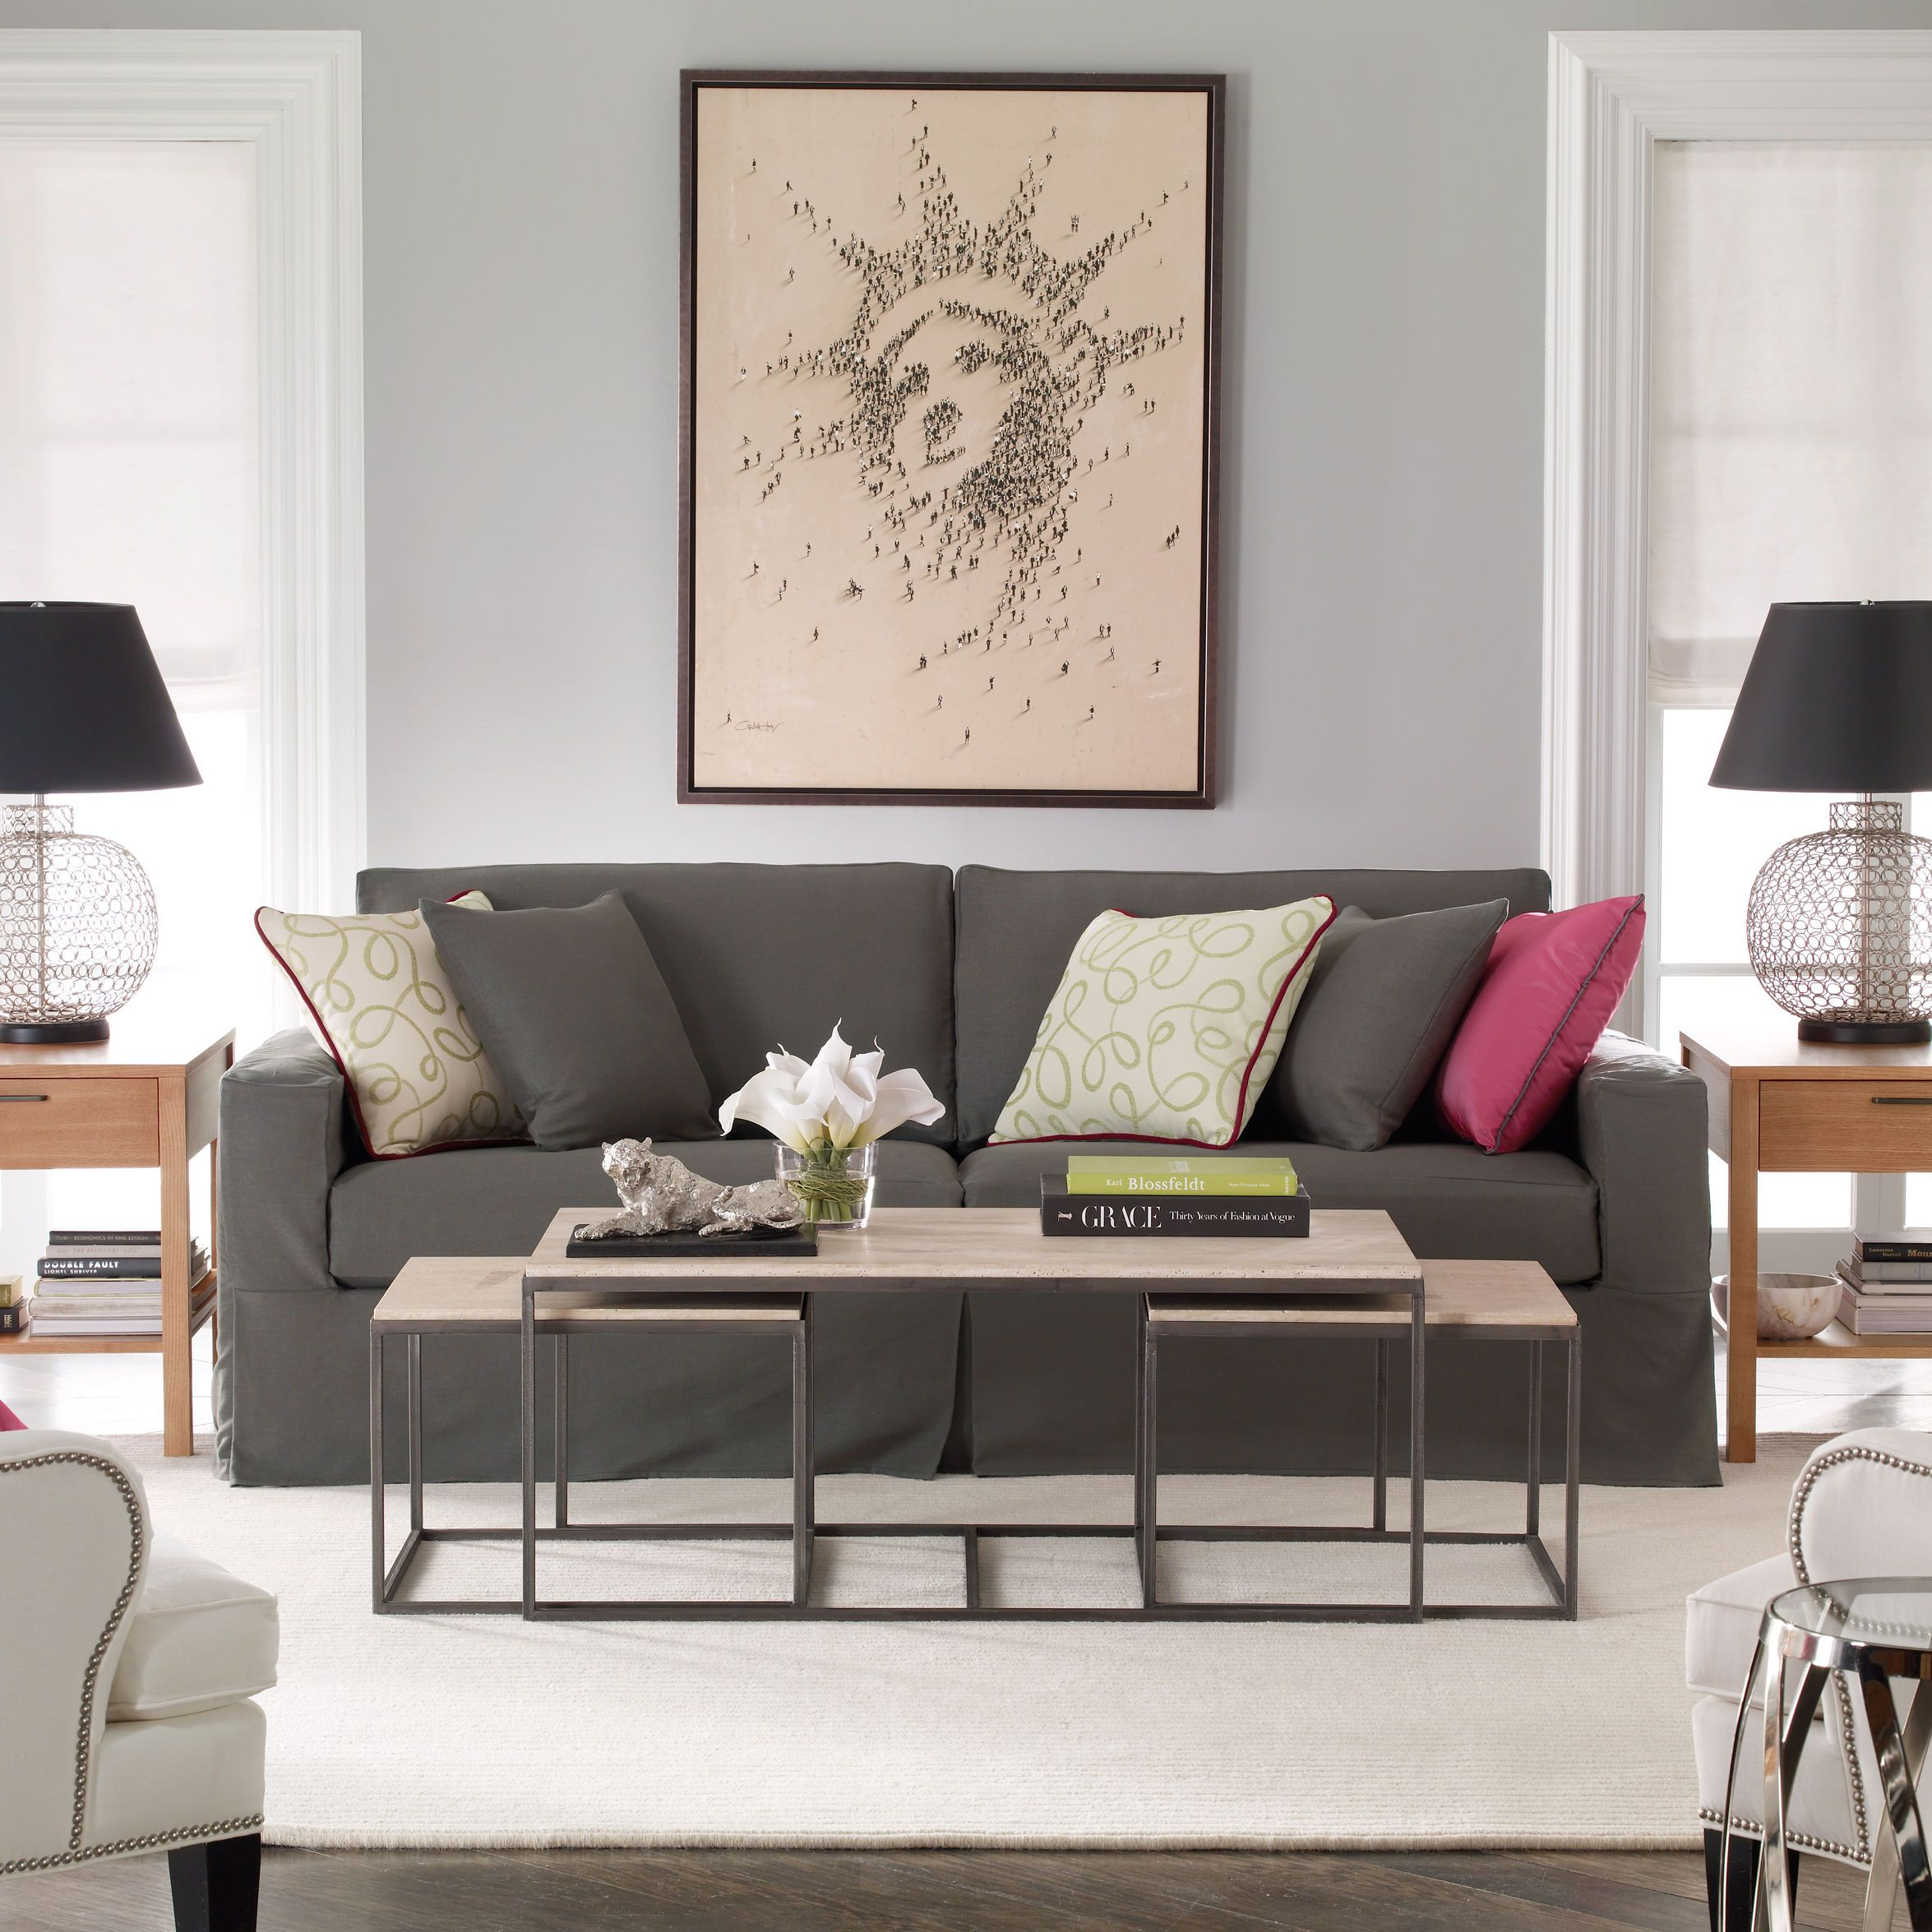 surprising ethan allen living room design ideas pictures remodel decor | Neutral interiors. Ethan Allen living room. Ethan Allen ...